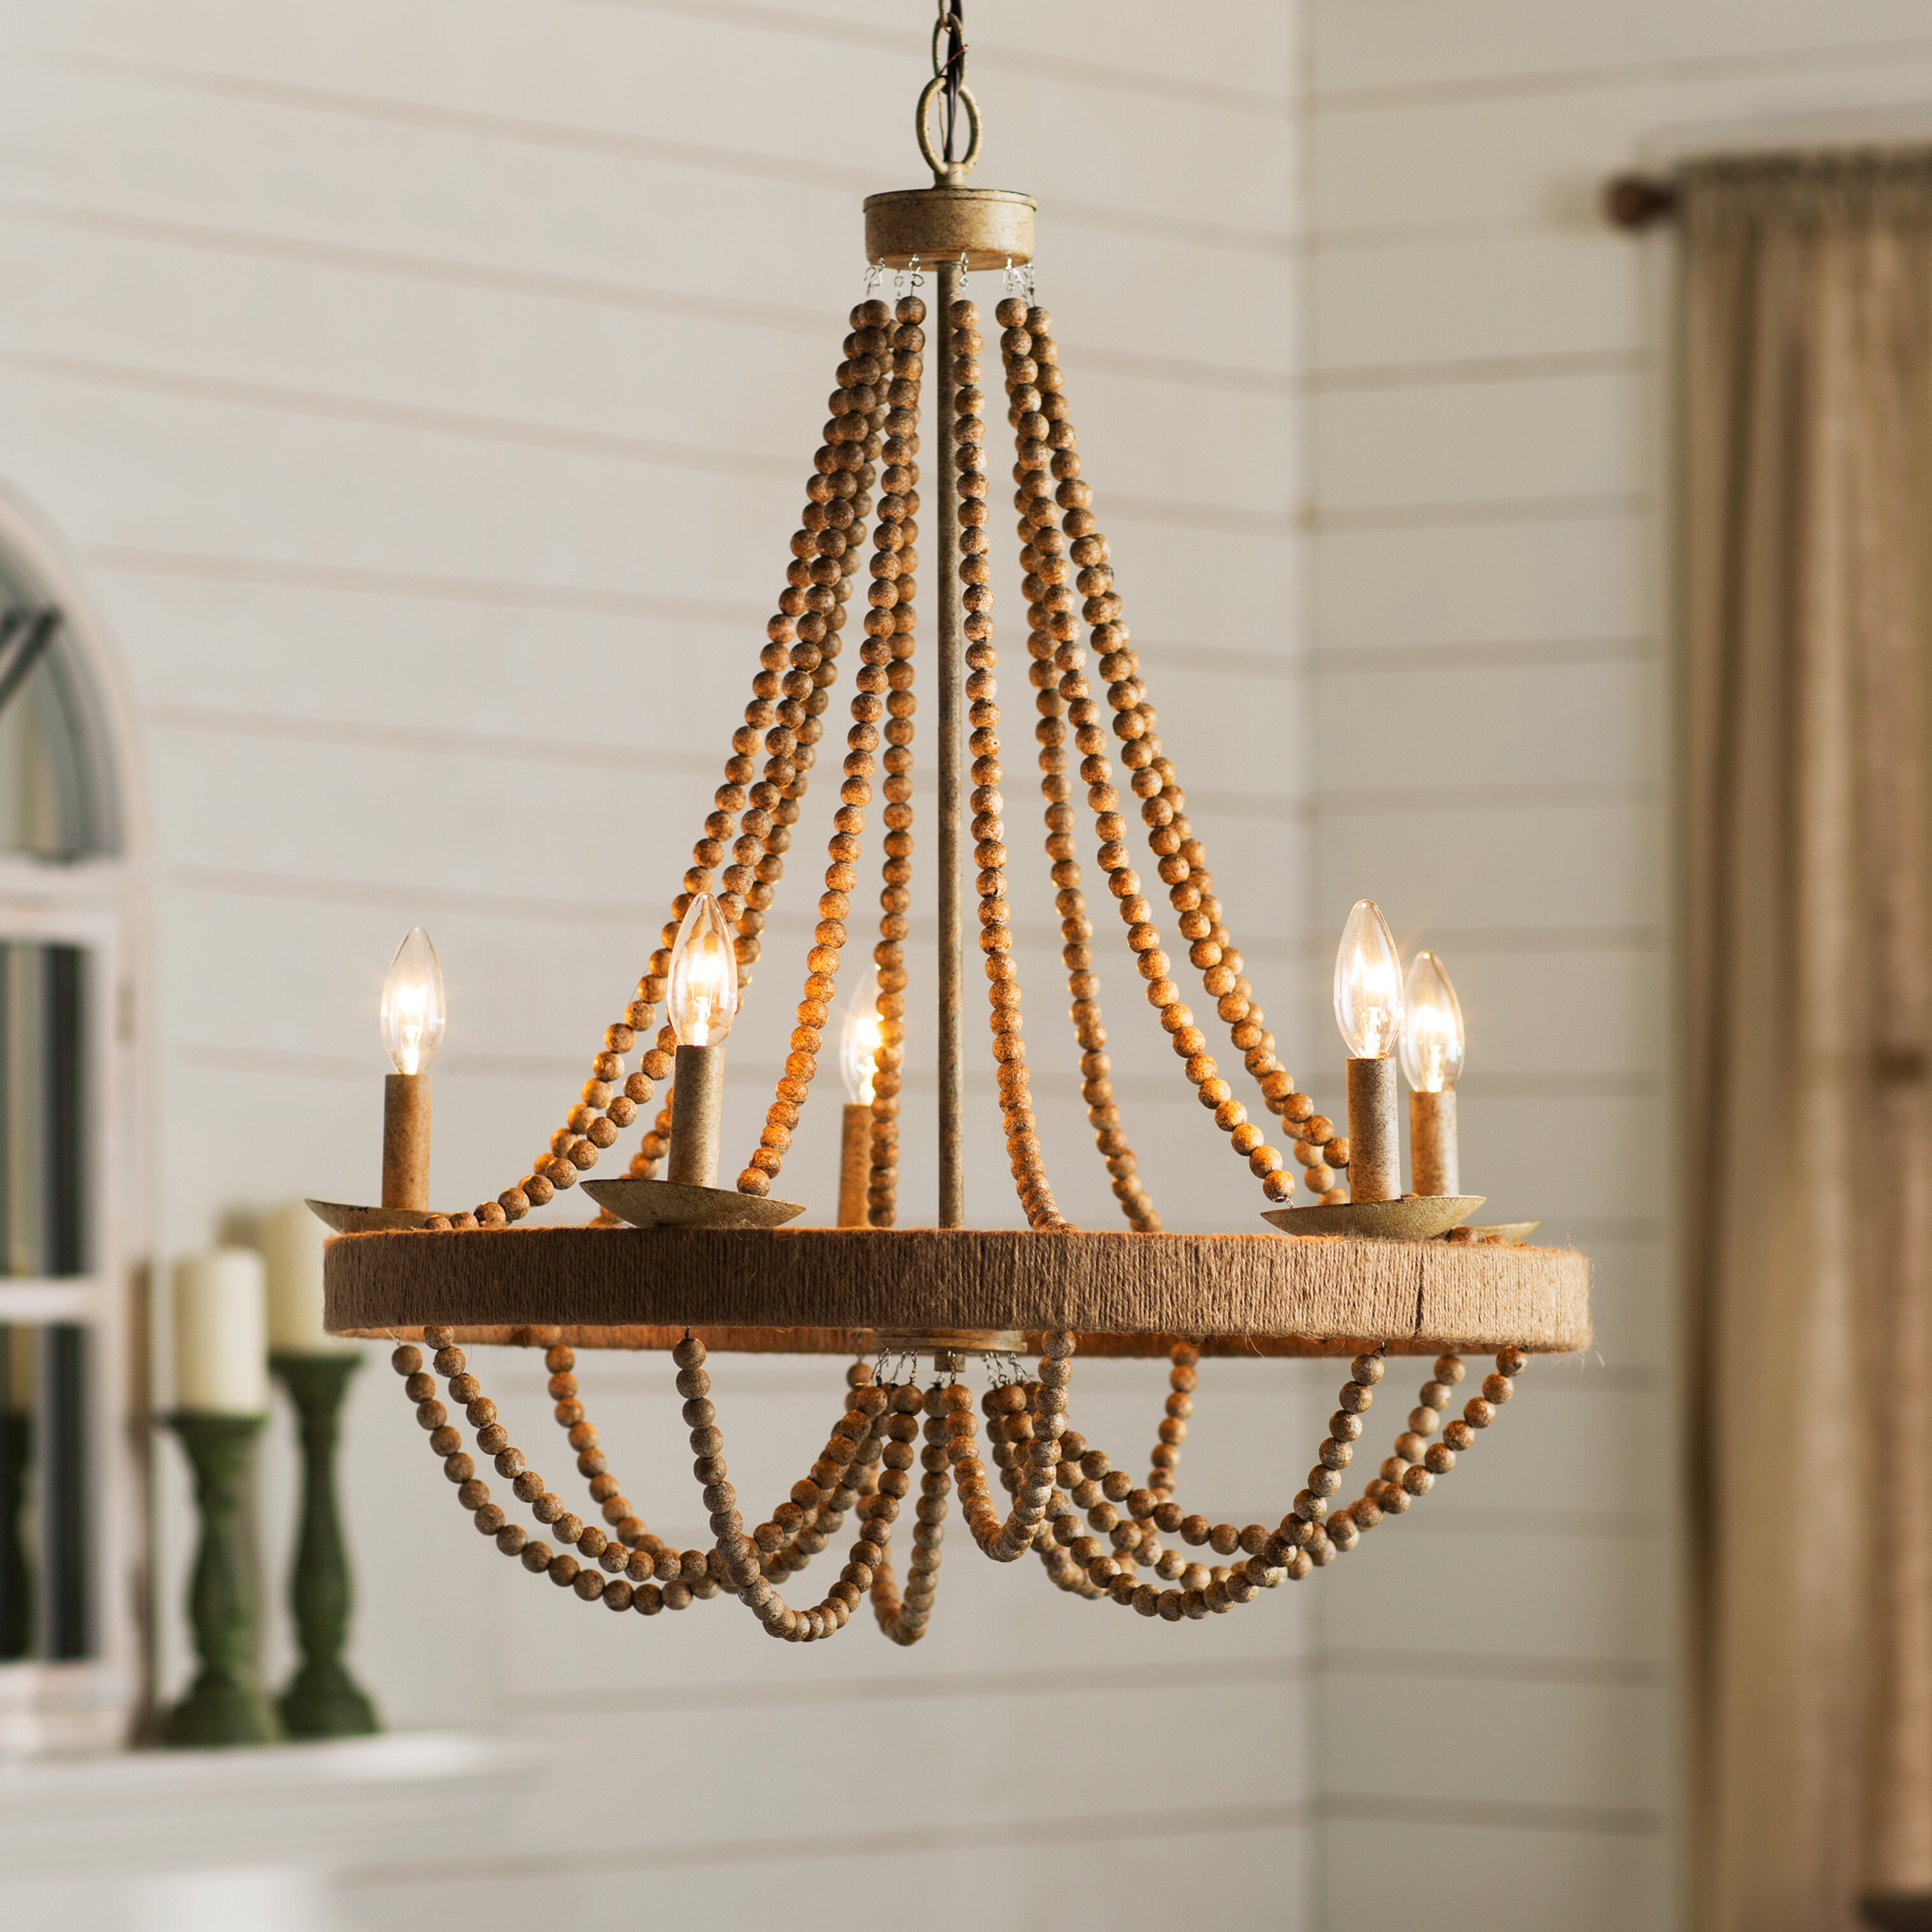 chandelier light elstead brz fashioned chandeliers online for candle old uk bronze buy sale shack cromwell